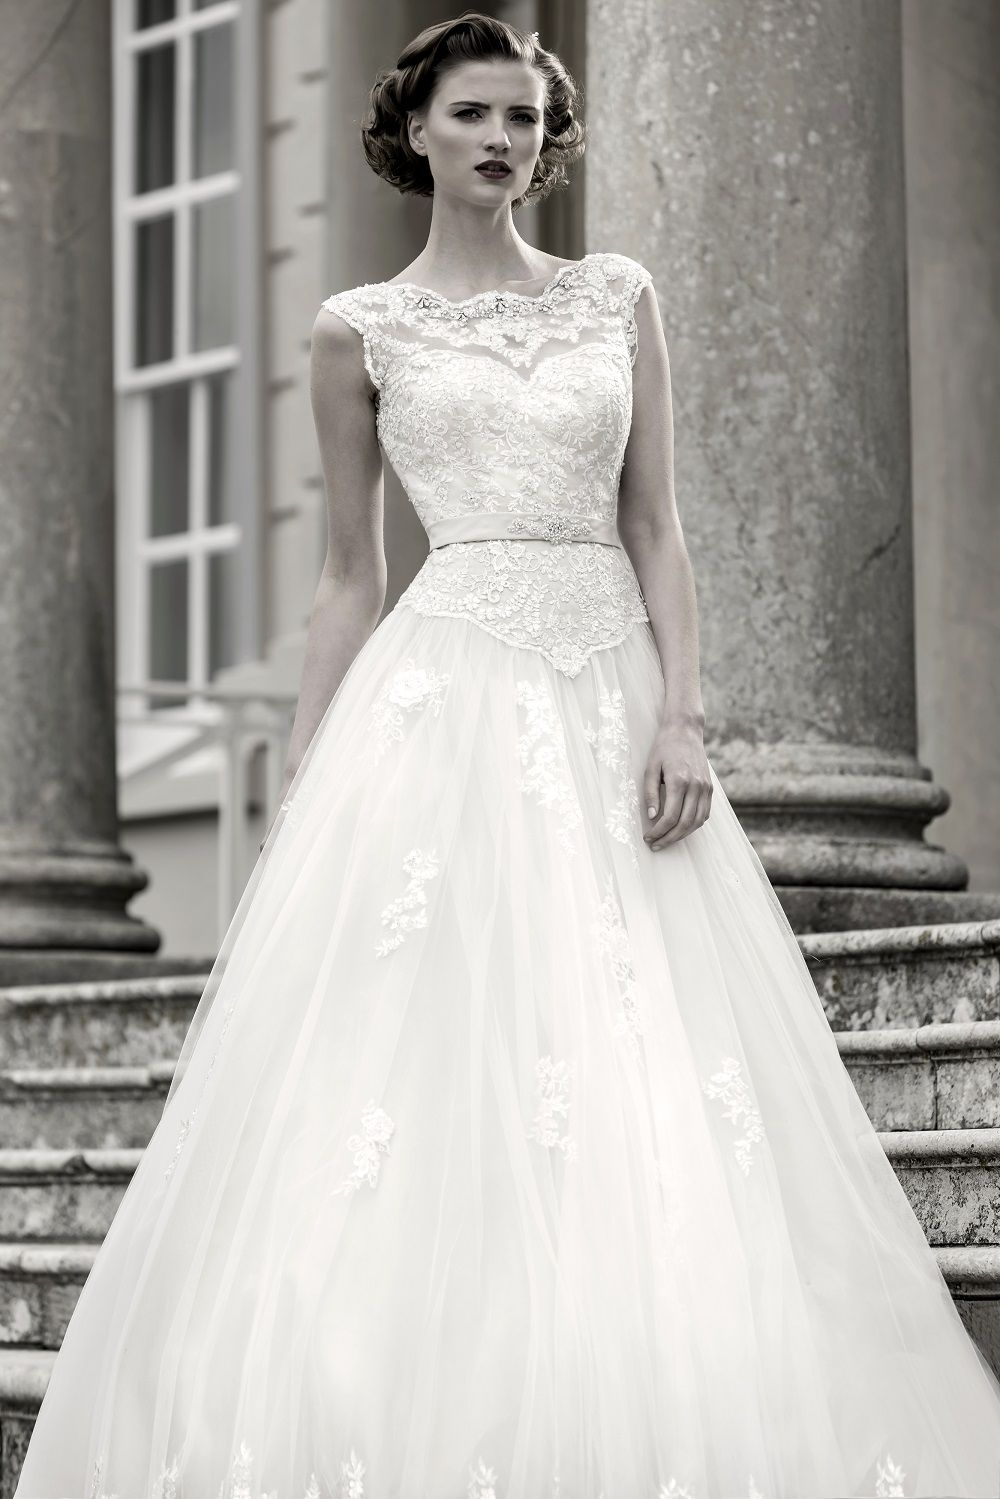 Wedding dresses fifties style  Blossom  Stunning full length bridal gown with lace bodice and